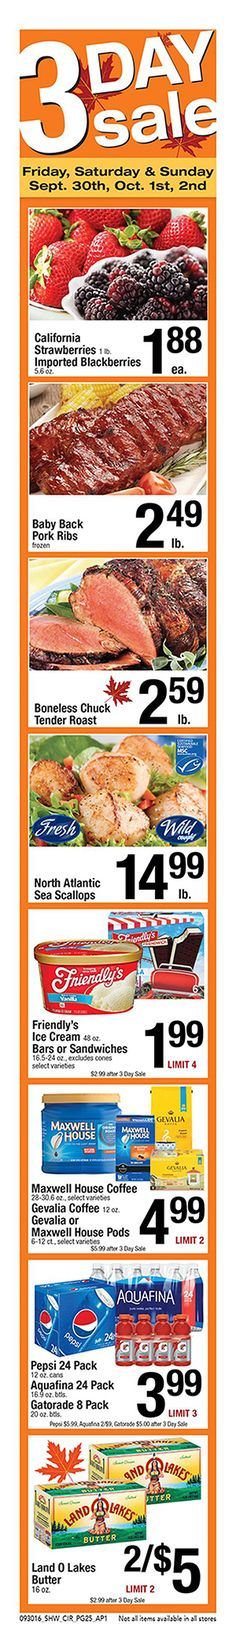 Shaws 3 Day Sale September 30 - October 2, 2016 - http://www.olcatalog.com/grocery/shaws-3-day-sale.html